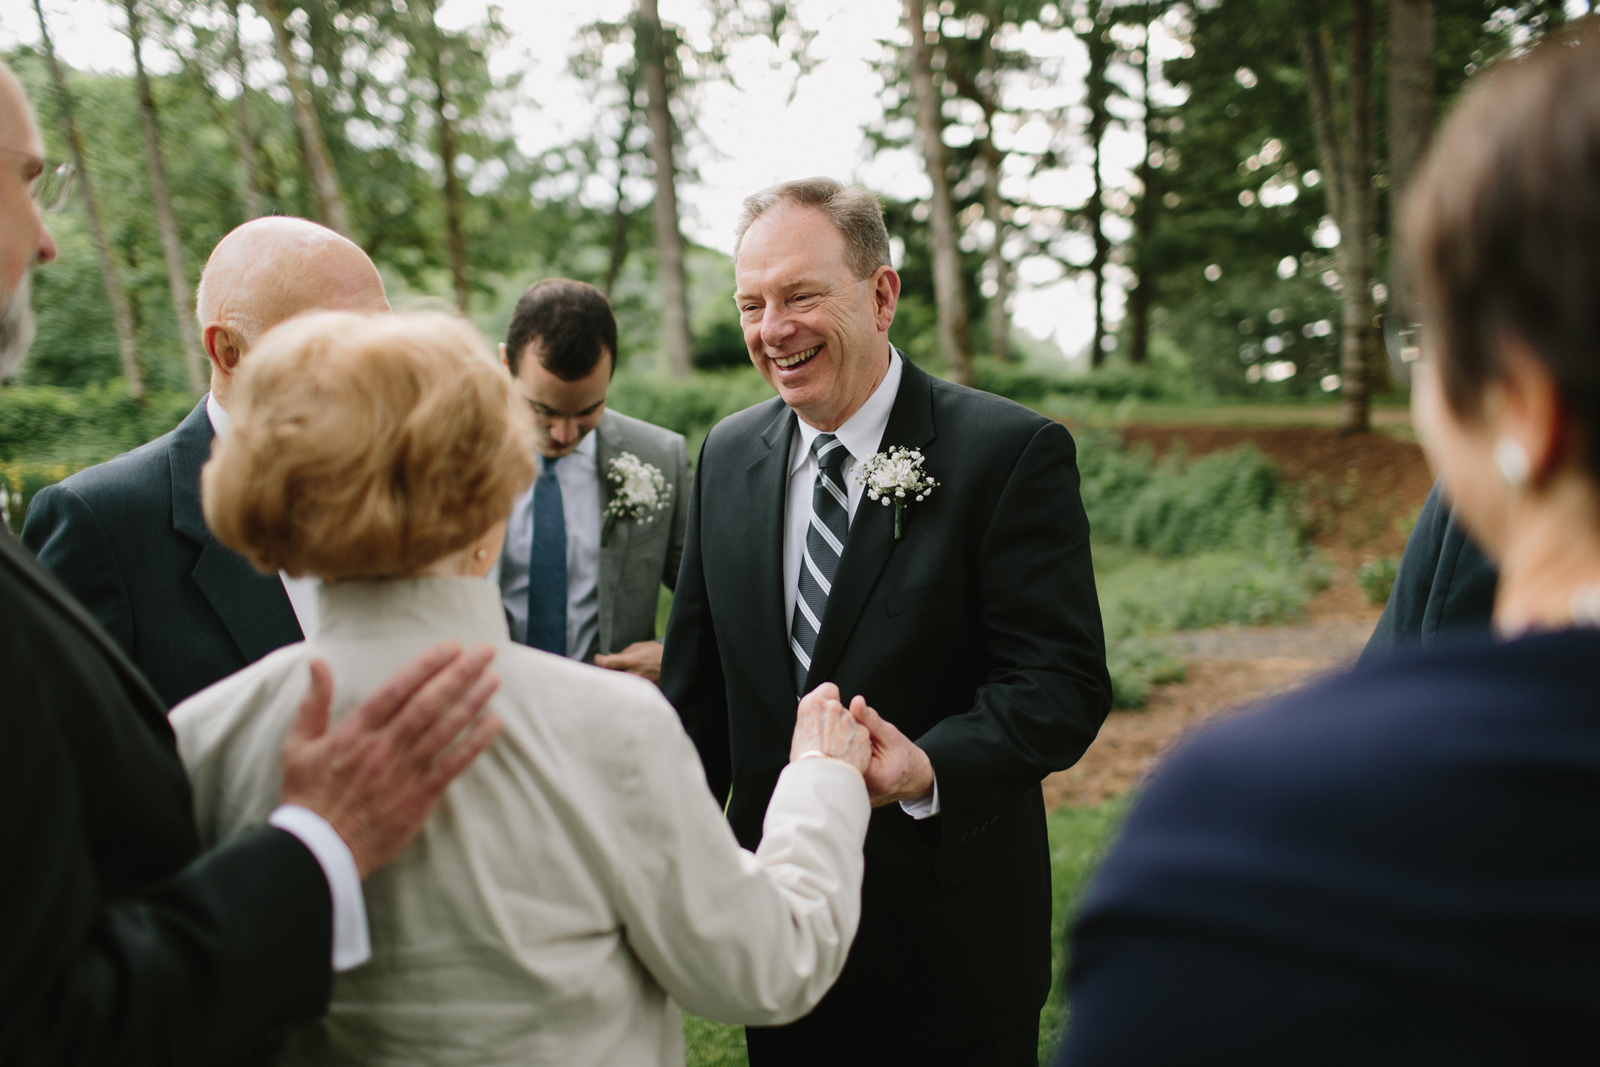 The father of the bride hugs guests at a wedding reception at bridal veil lakes in Corbett, OR